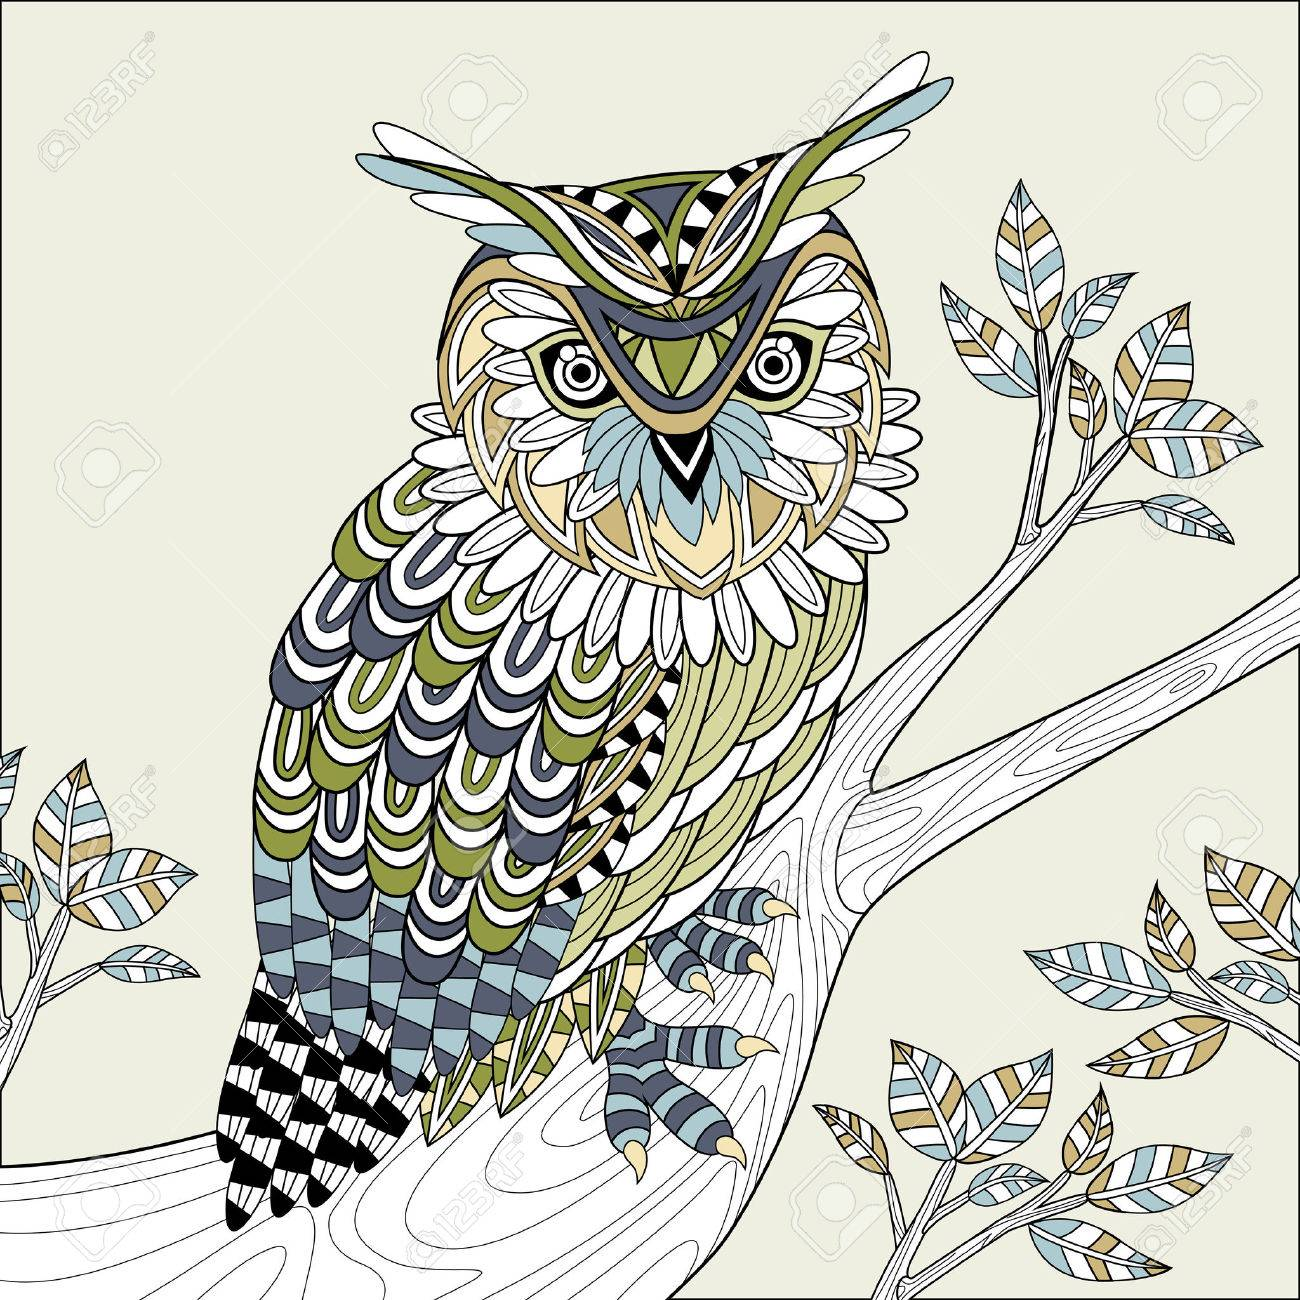 Wise Owl Coloring Page In Exquisite Style Royalty Free Cliparts